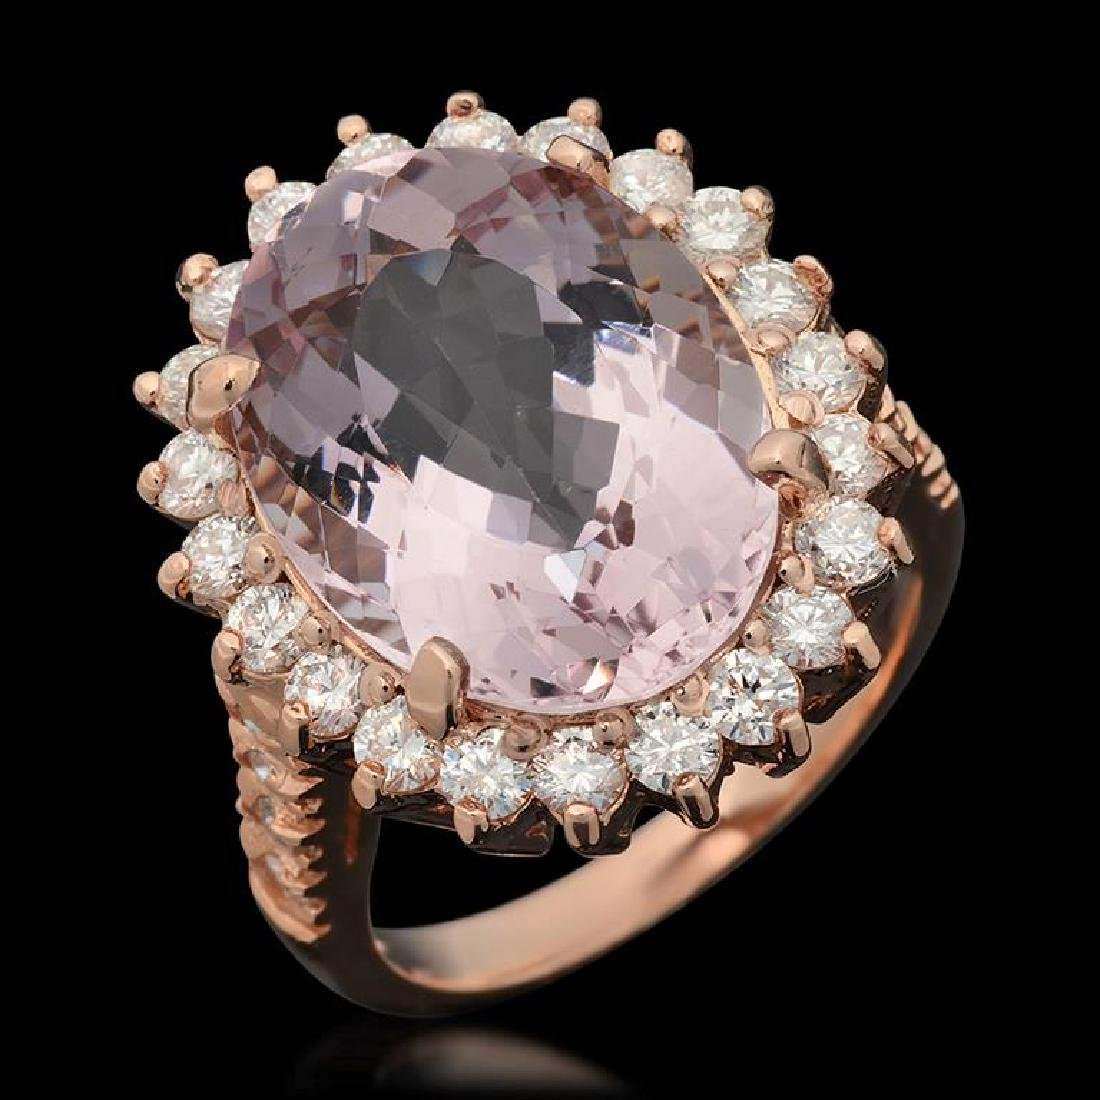 14k Gold 9.73ct Kunzite & 1.47ct Diamond Ring